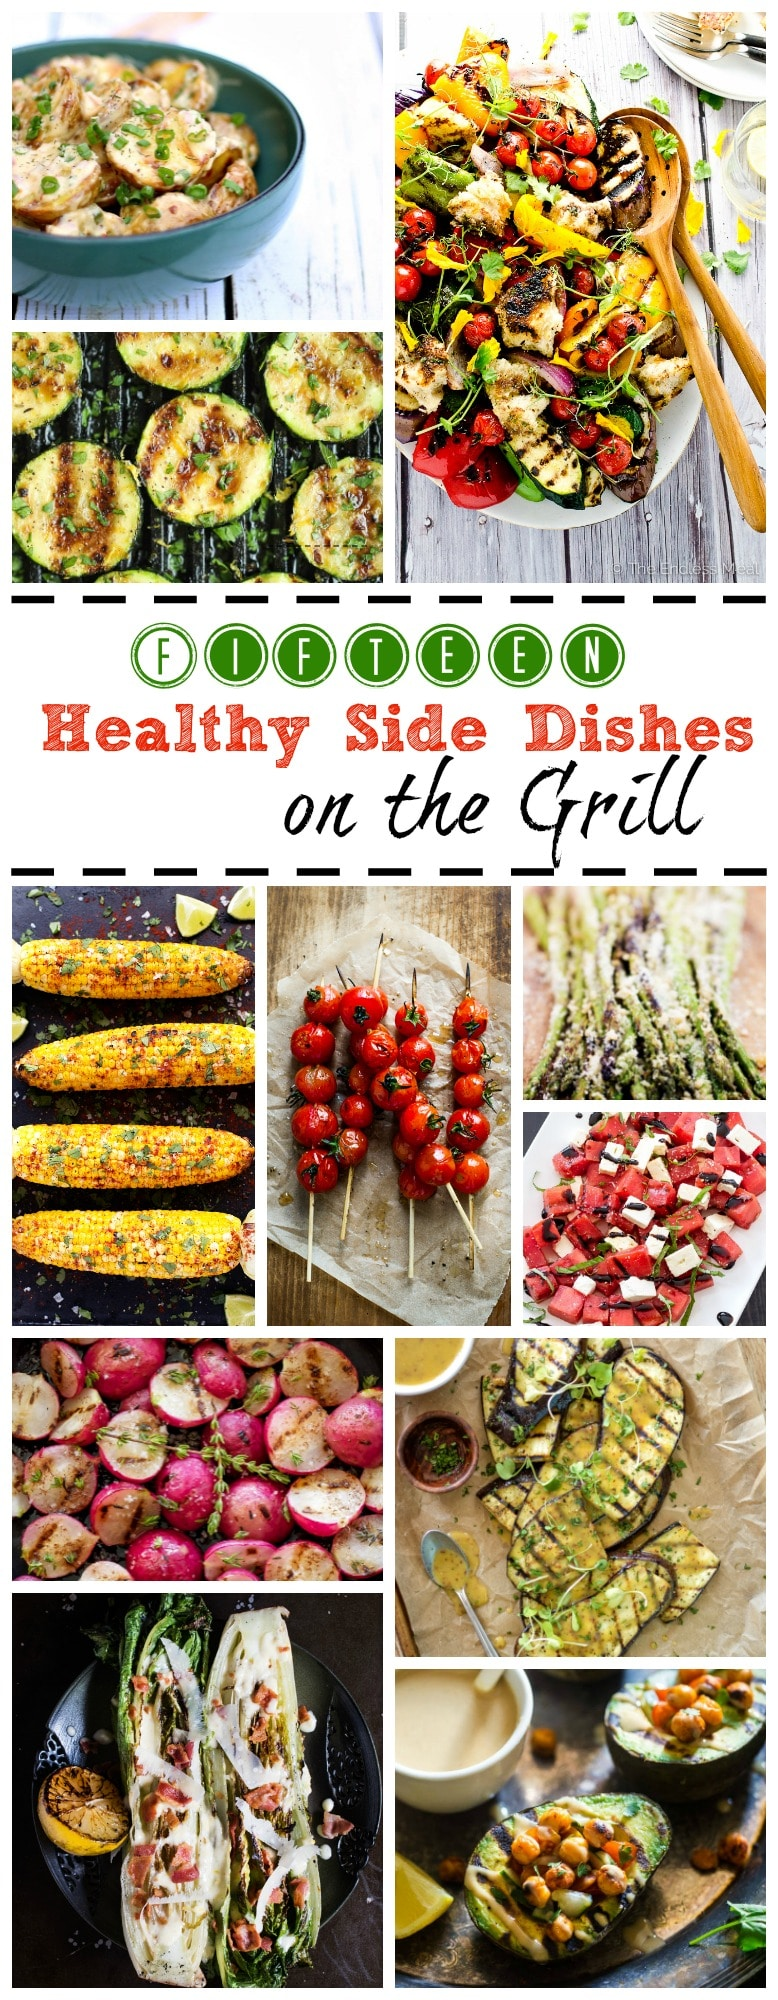 15-healthy-side-dishes-on-the-grill